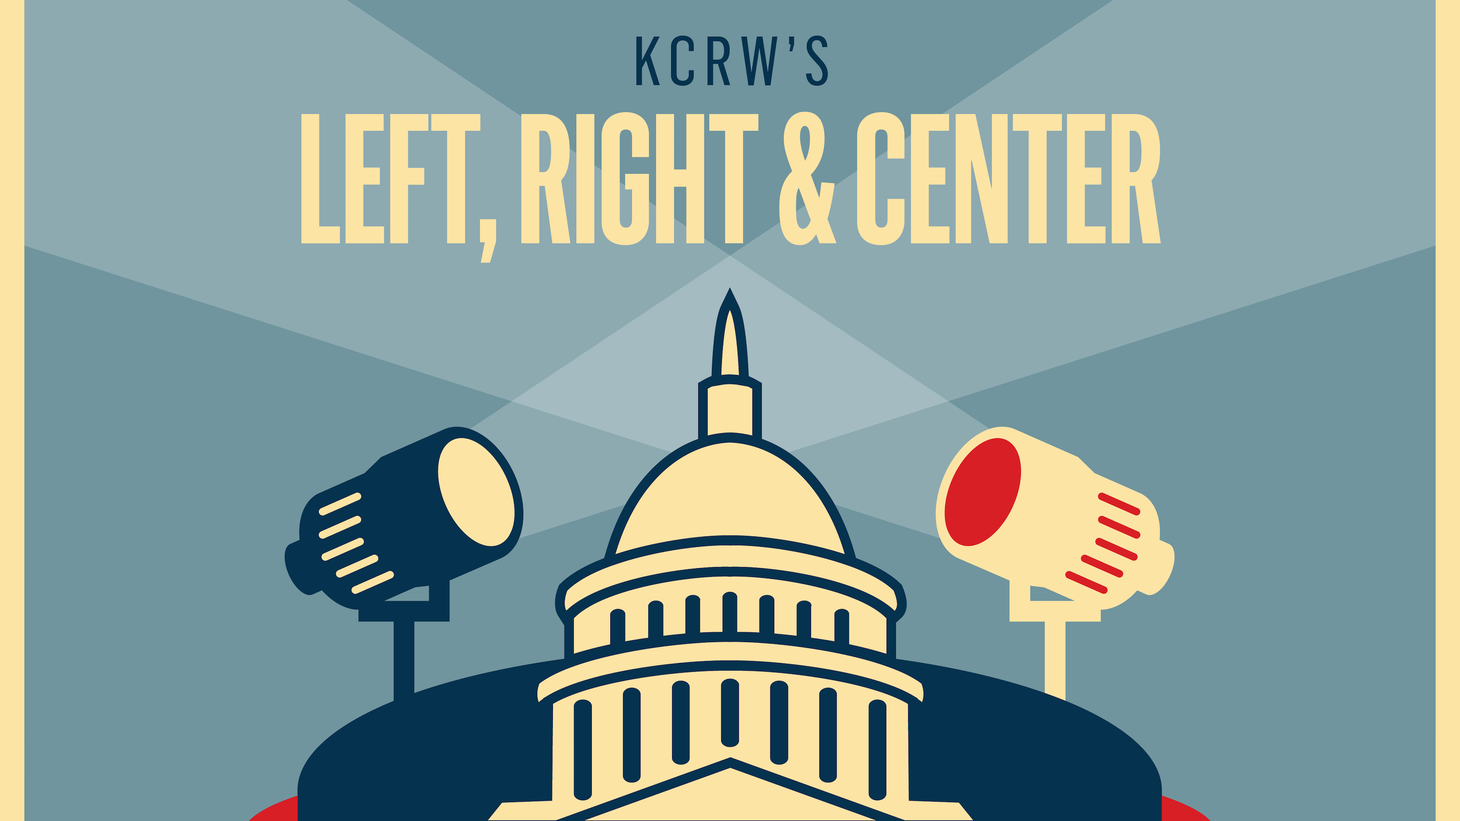 KCRW's weekly confrontation over politics, policy and popular culture.